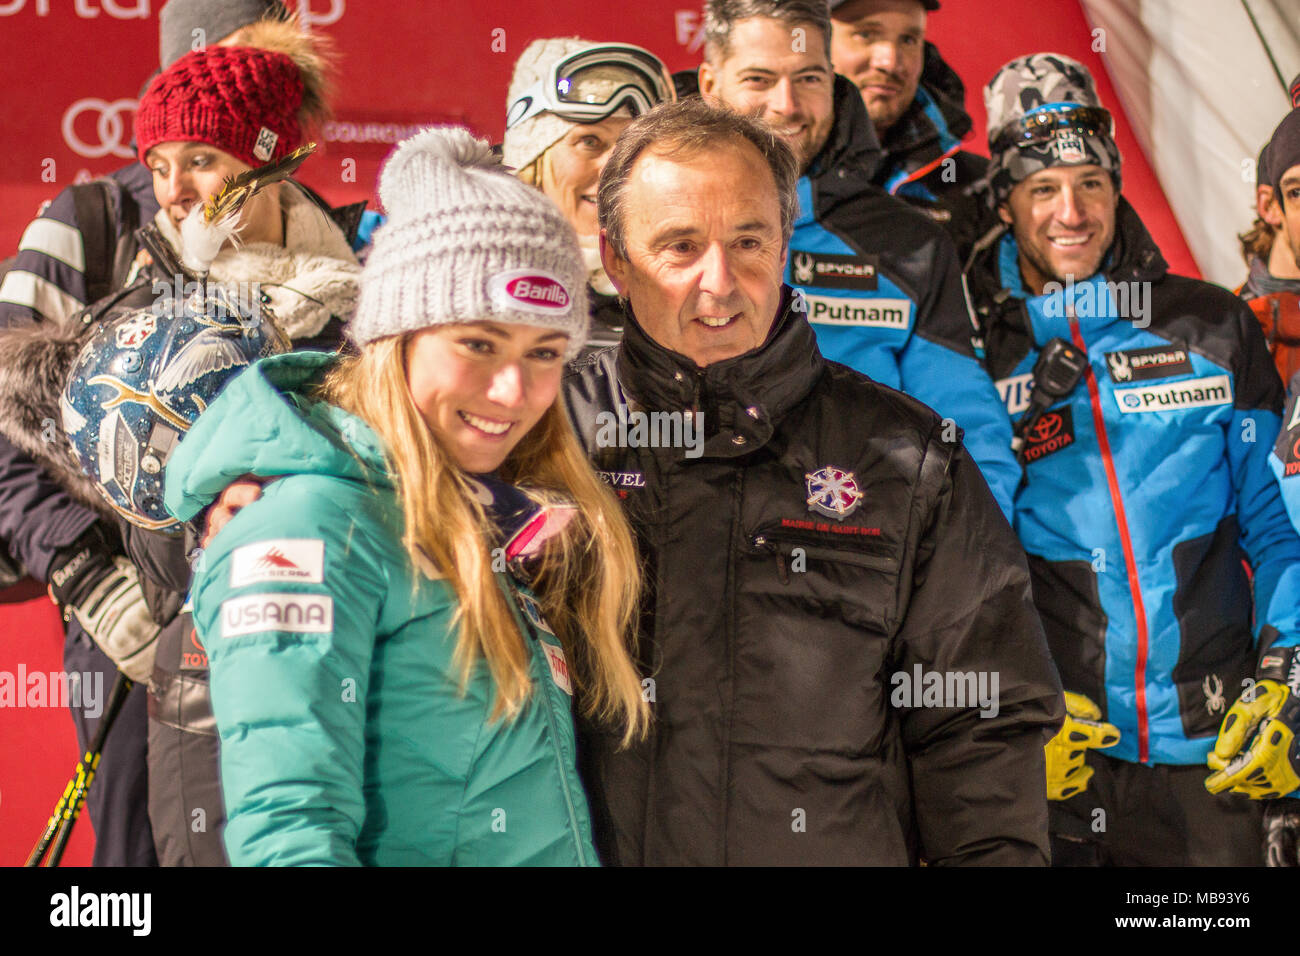 20 December 2017, Courchevel, Savoie, France, Mikaela Shiffrin of Usa winner of Ski World Cup with Philippe Mugnier maire of St. Bon Courchevel - Stock Image